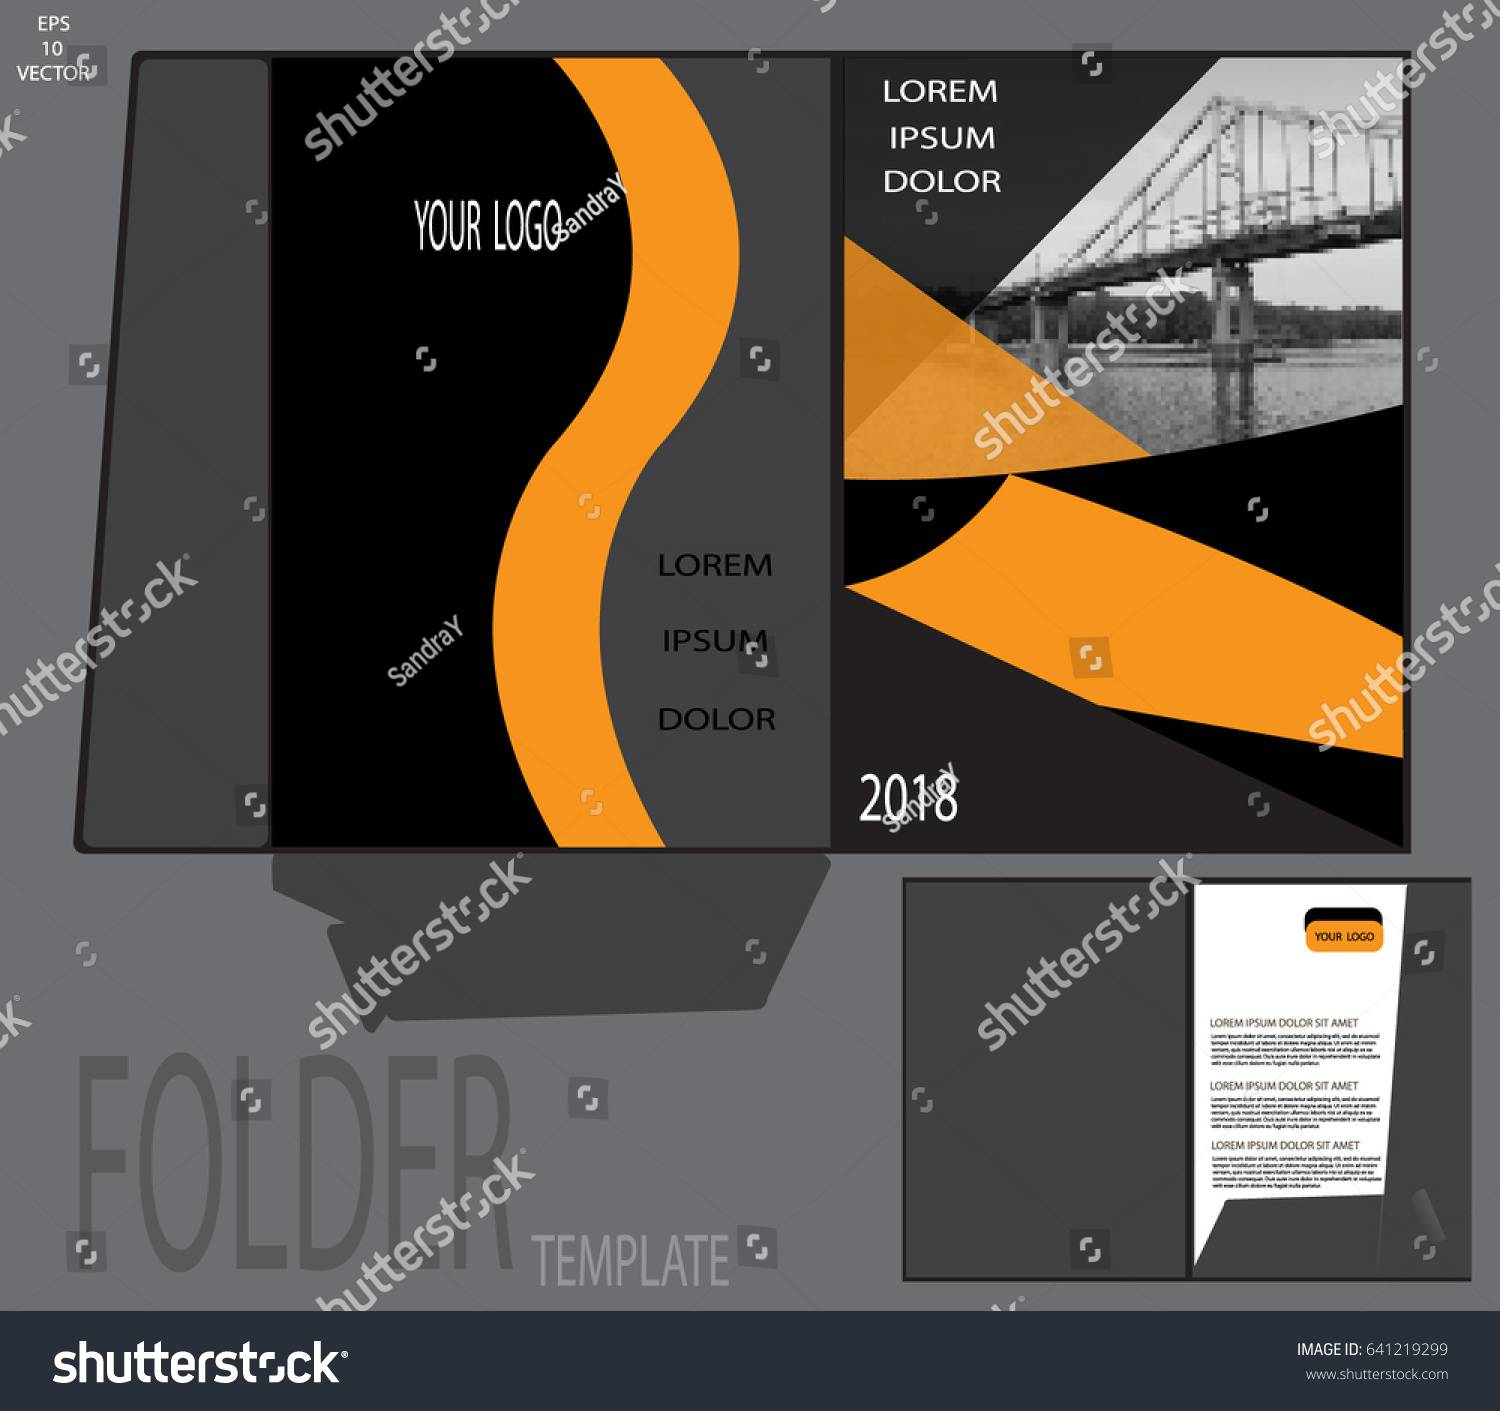 Presentation Folder Template Vector